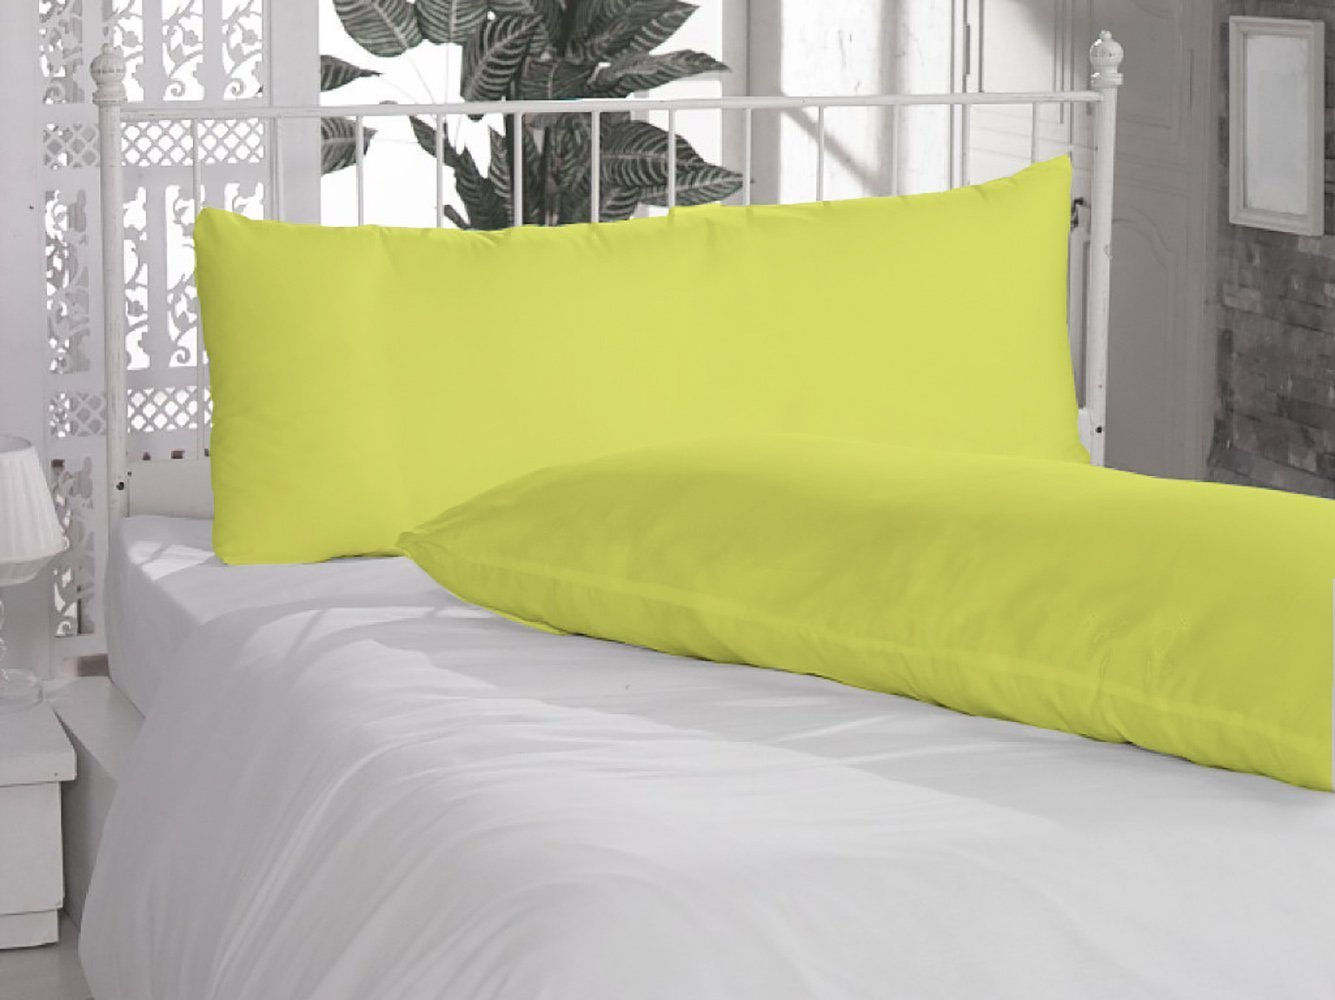 Prince Lionheart Inc Solid Pattern 800 Thread Count 100% Egyptian Cotton One Pair Body Pillow Cover (Bodypillow cases 20'' x 54'', Yellow)